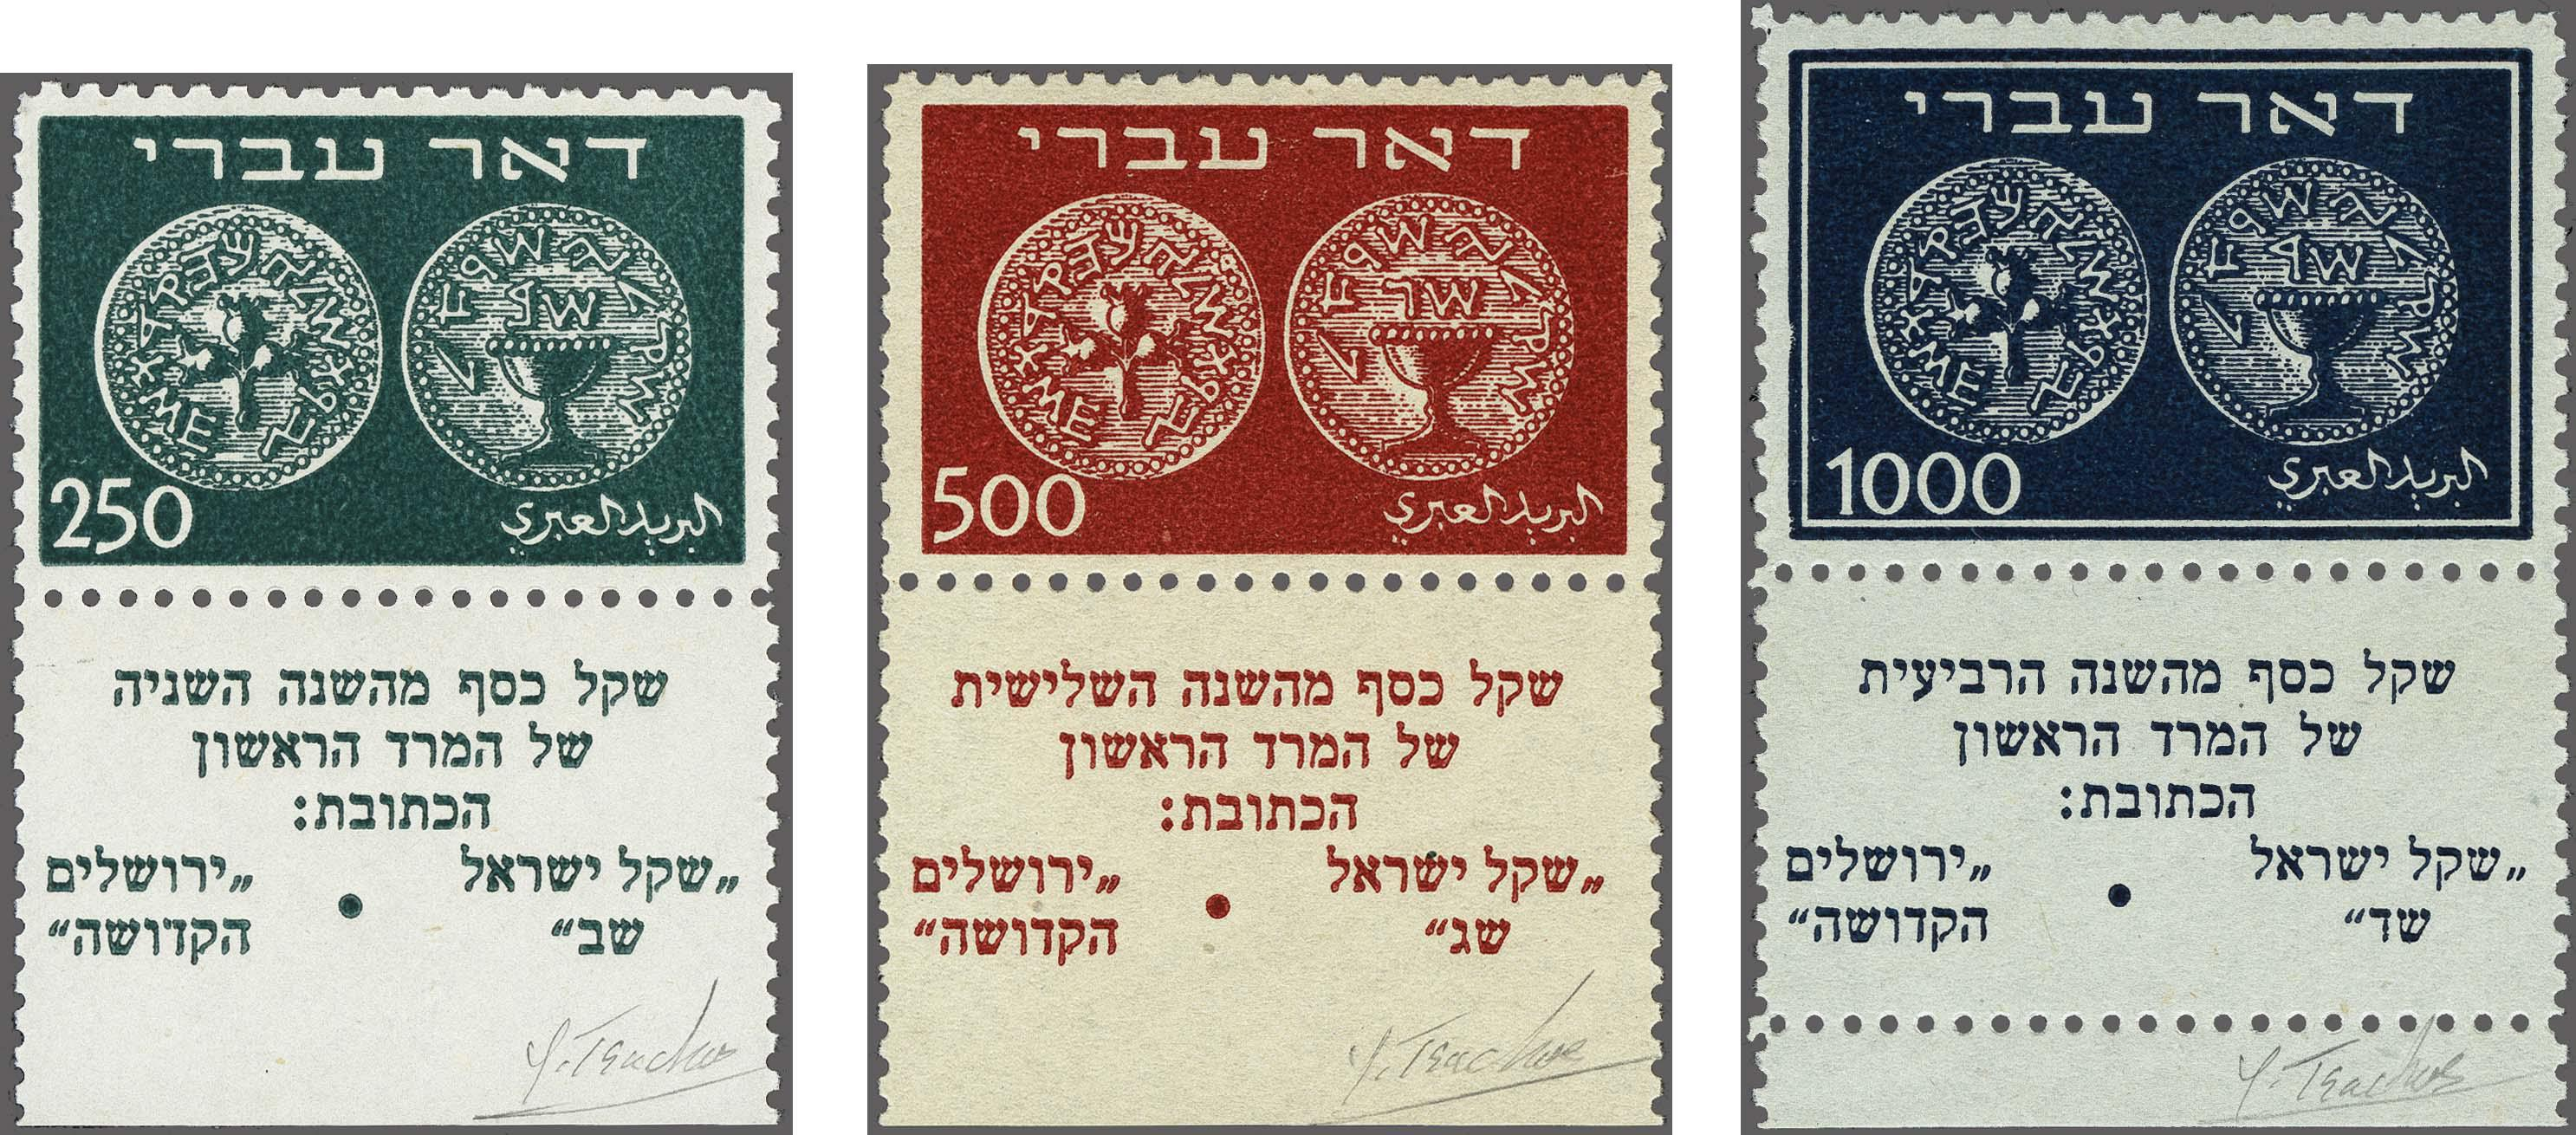 Lot 203 - Outside Europa Israel -  Corinphila Veilingen Auction 250-253 - Day 1 - Foreign countries